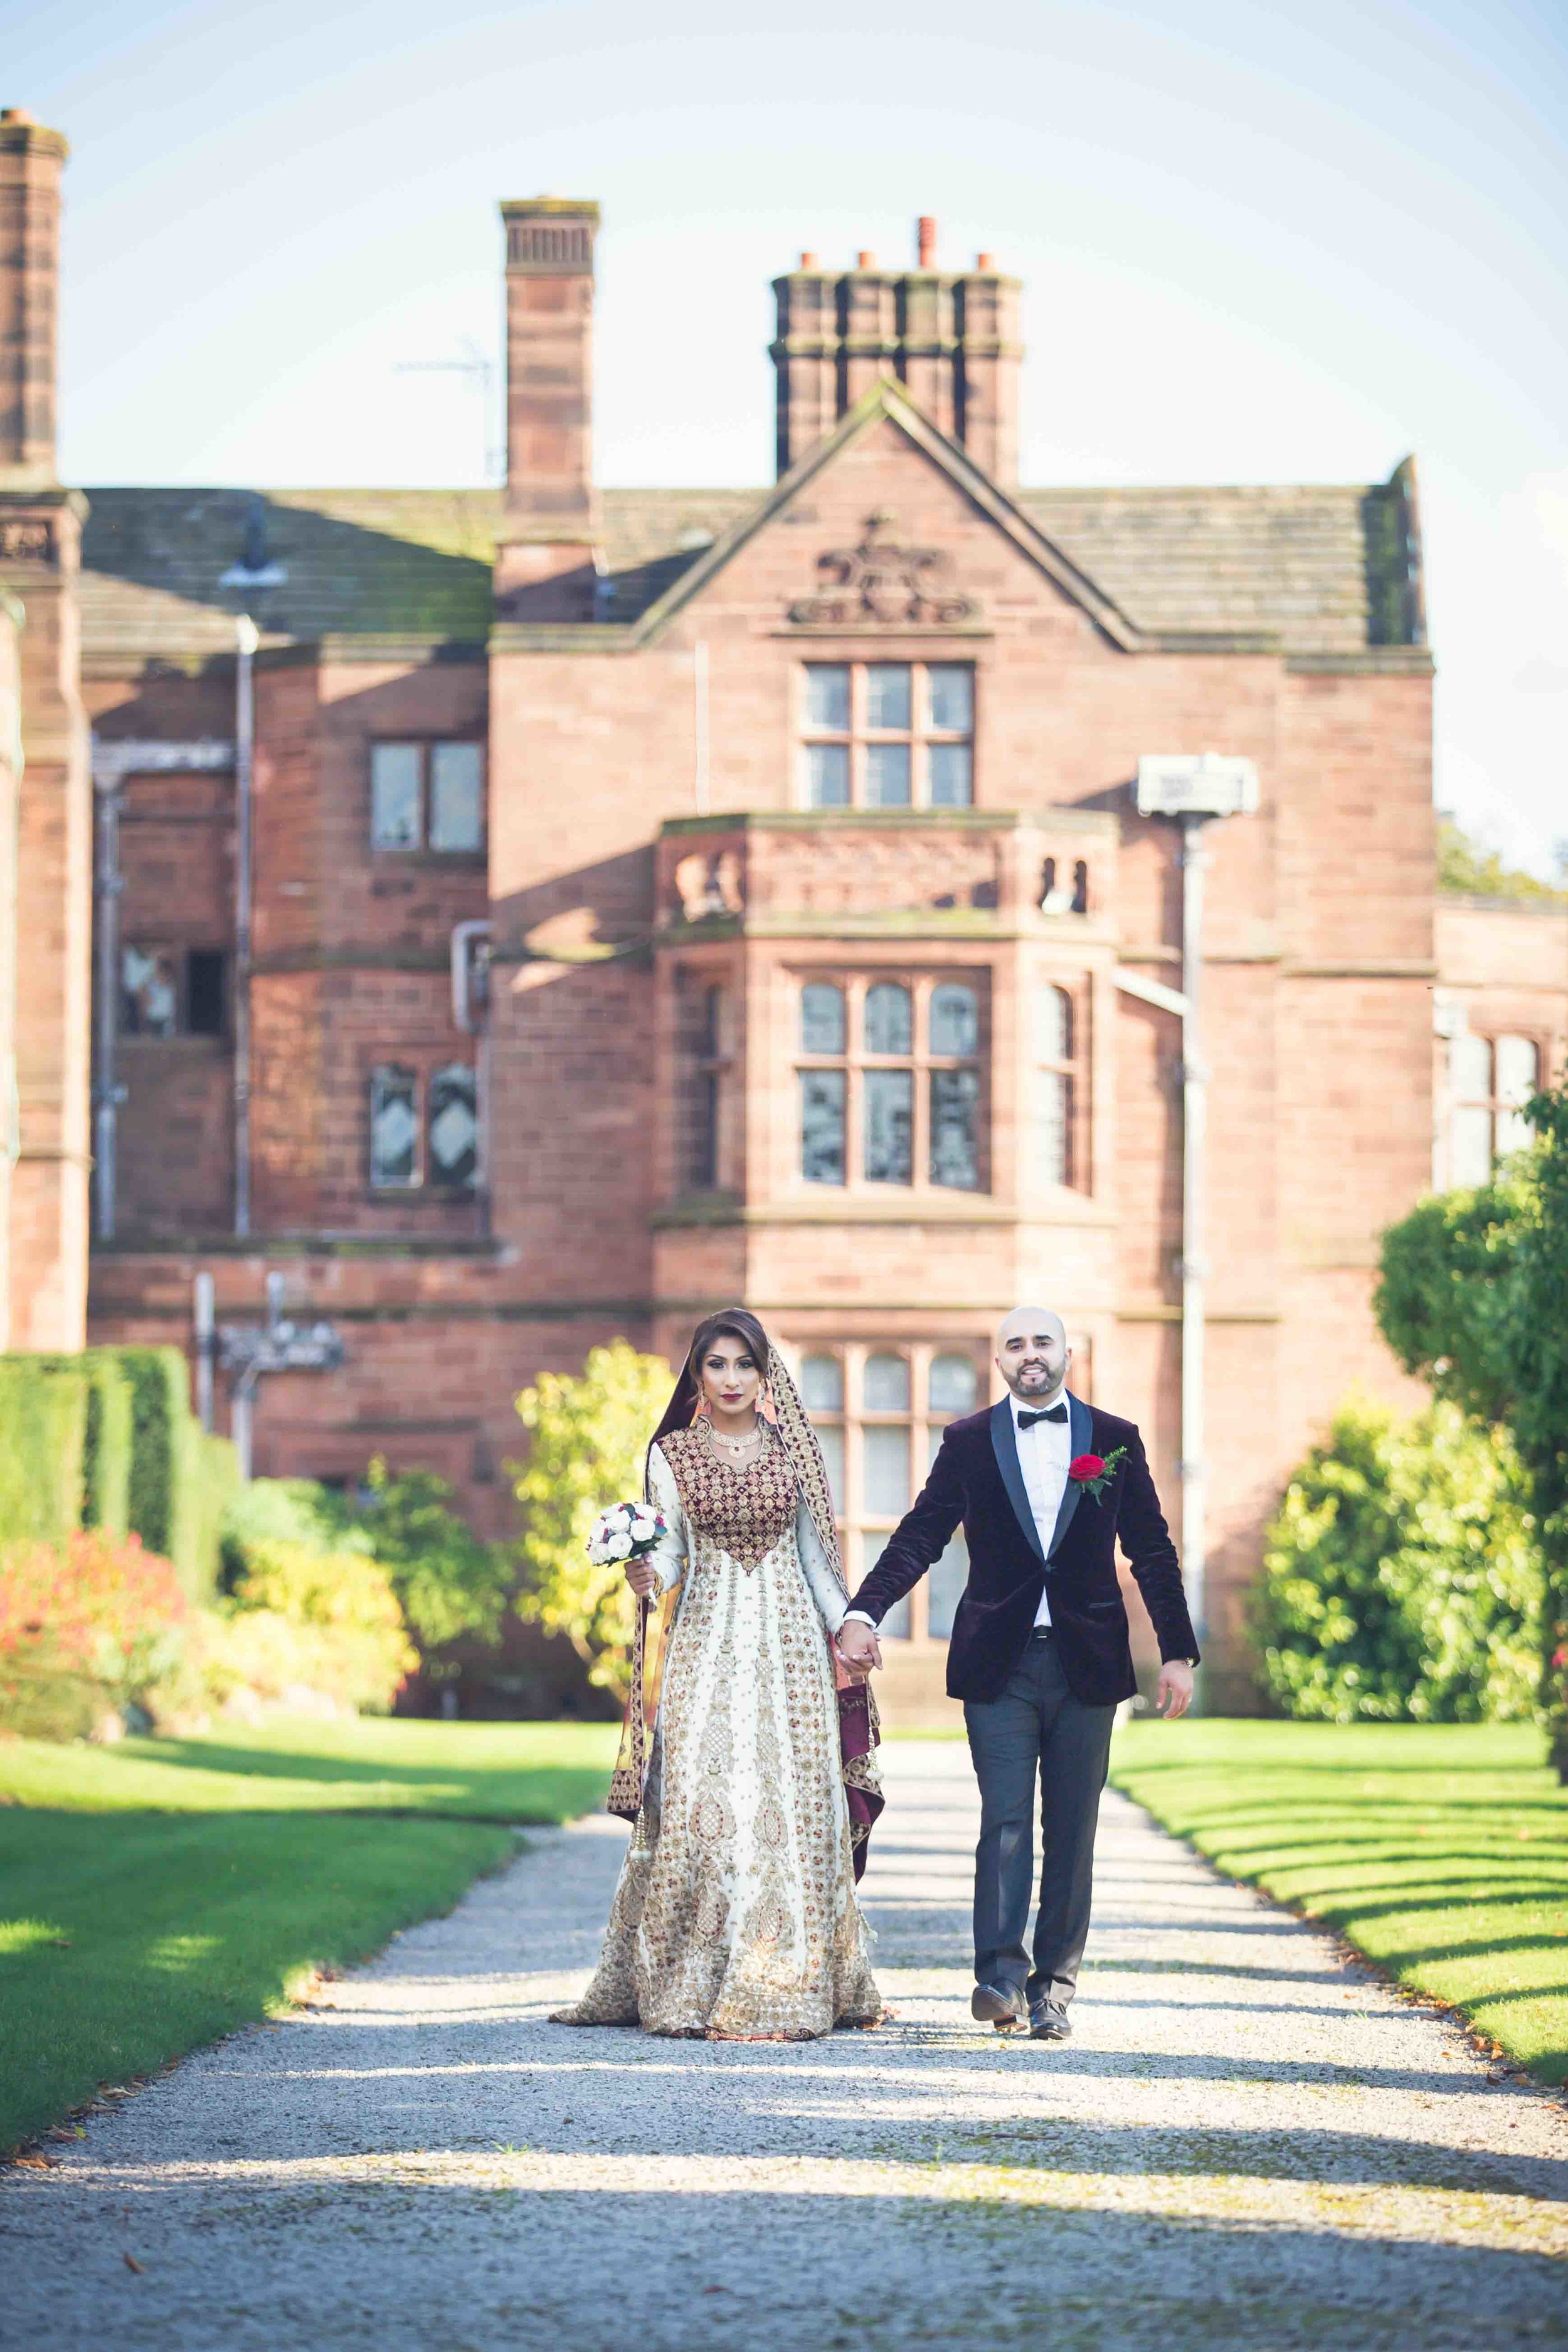 Opu Sultan Photography Asian wedding photography scotland edinburgh glasgow manchester birmingham london-195.jpg